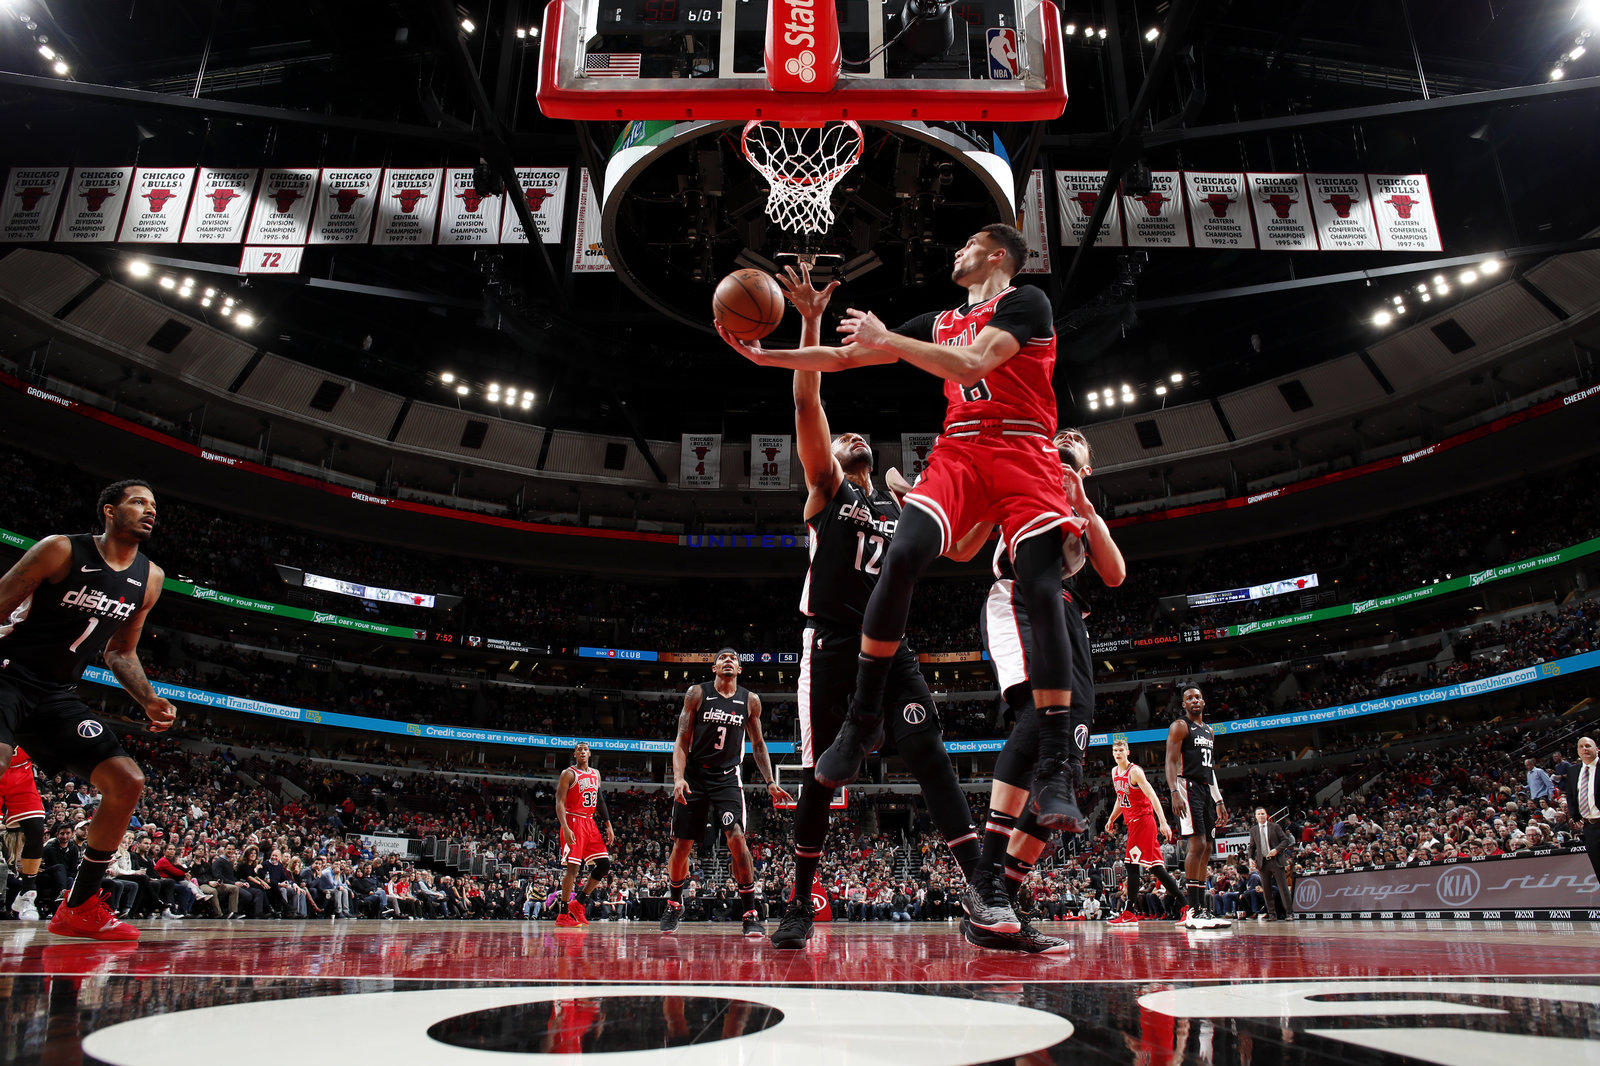 Zach LaVine drives to basket against Washington Wizards.